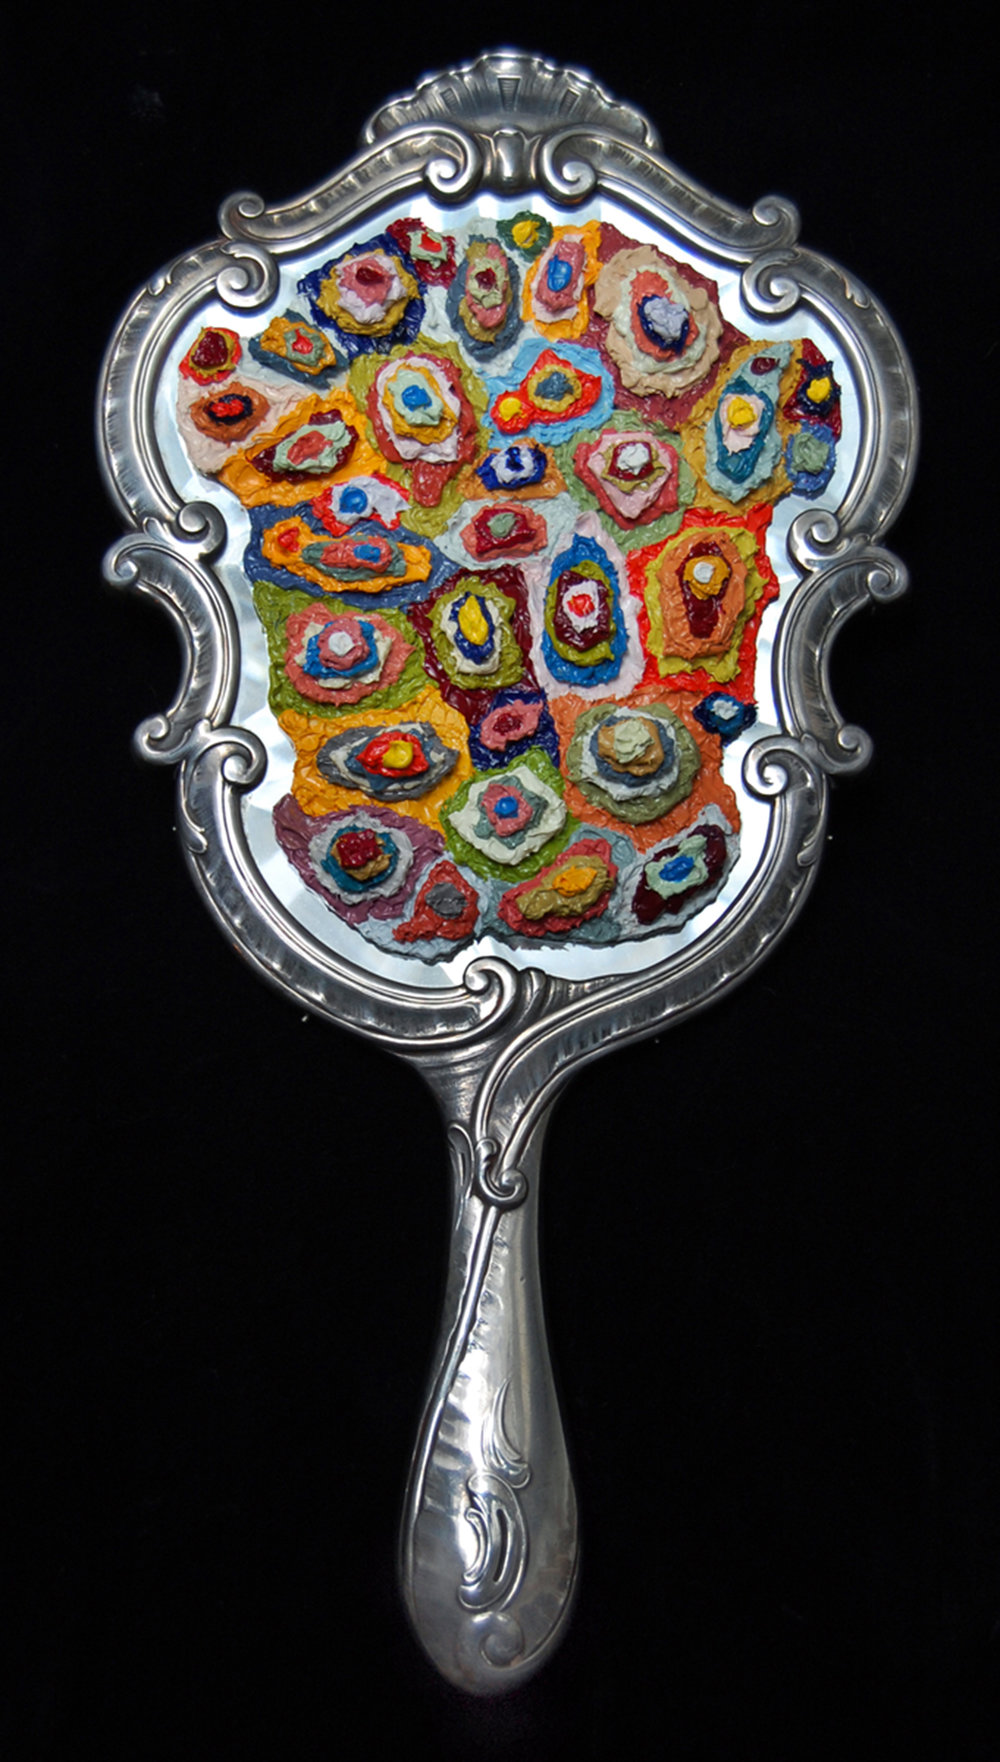 AP VIII (Reflection), 2009  |   12 x 6 inches  |  oil on Sterling silver hand-mirror (circa 1860)